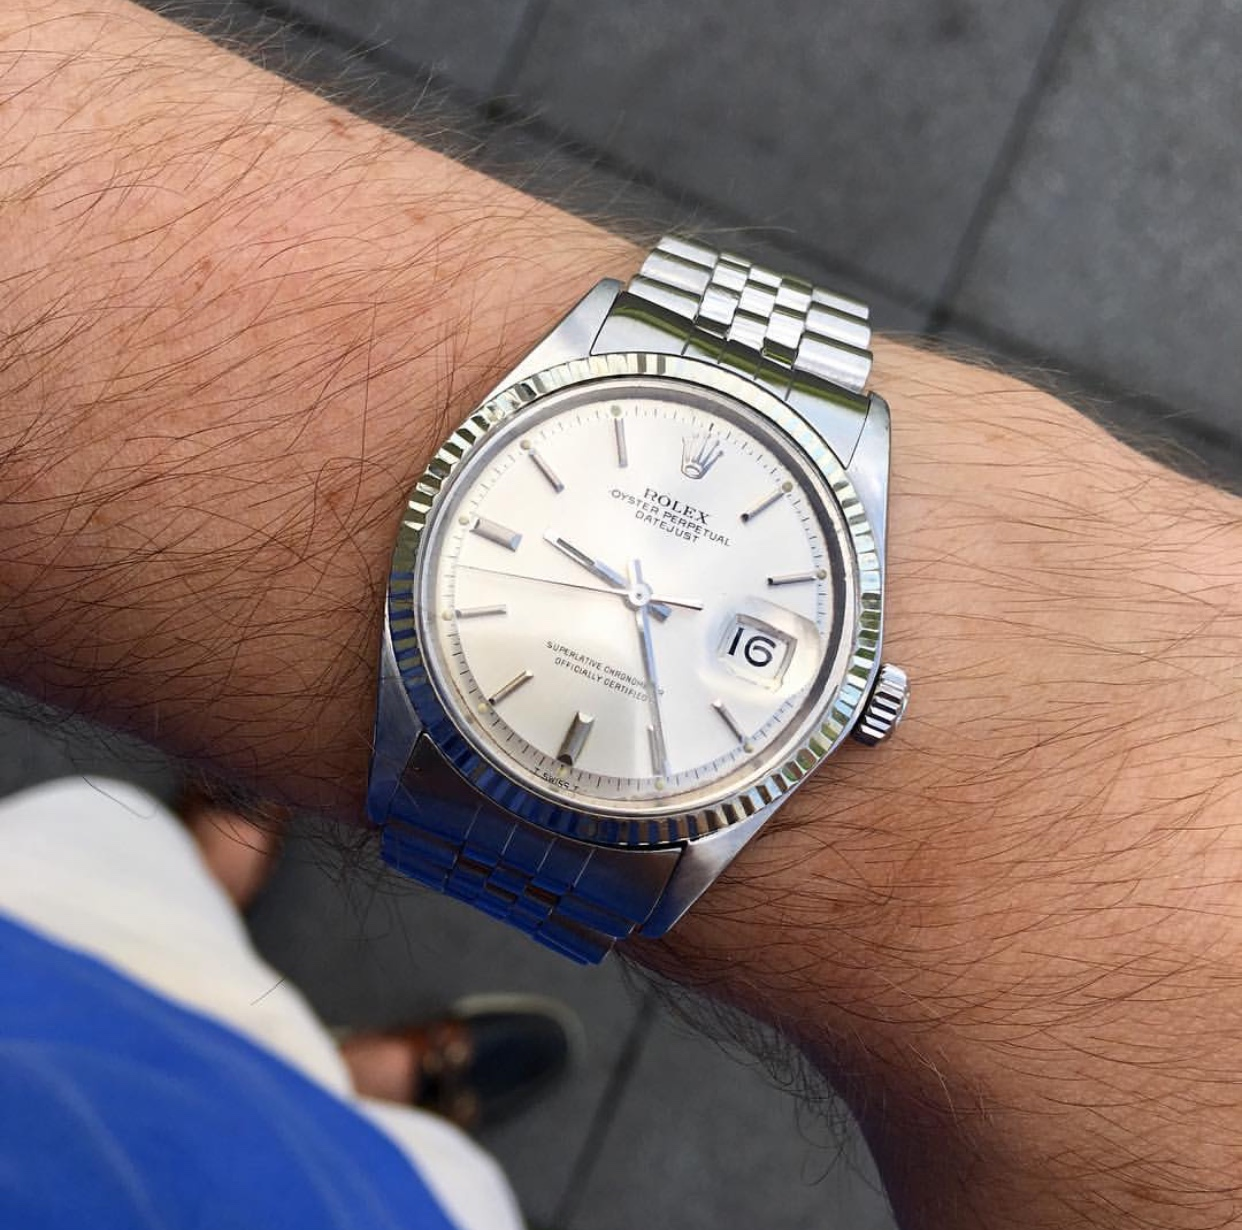 Rolex Datejust 1601 from 1969